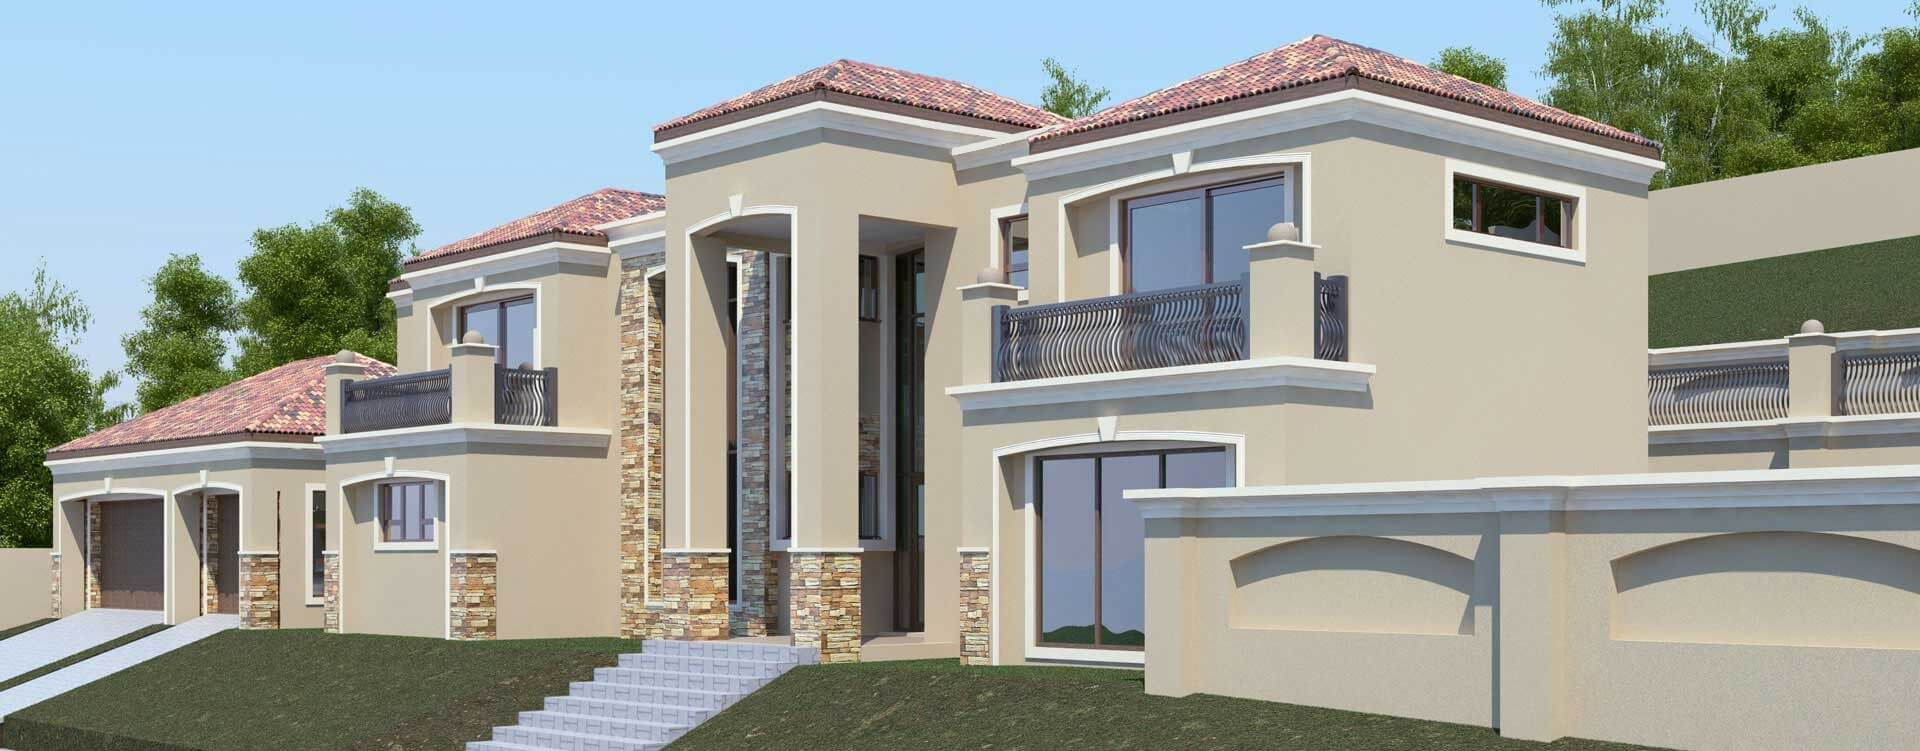 stunning villa plan. Modern Tuscan style  5 bedroom house plan Double storey floor plans Nethouseplans architectural House Plans For Sale Online Designs And